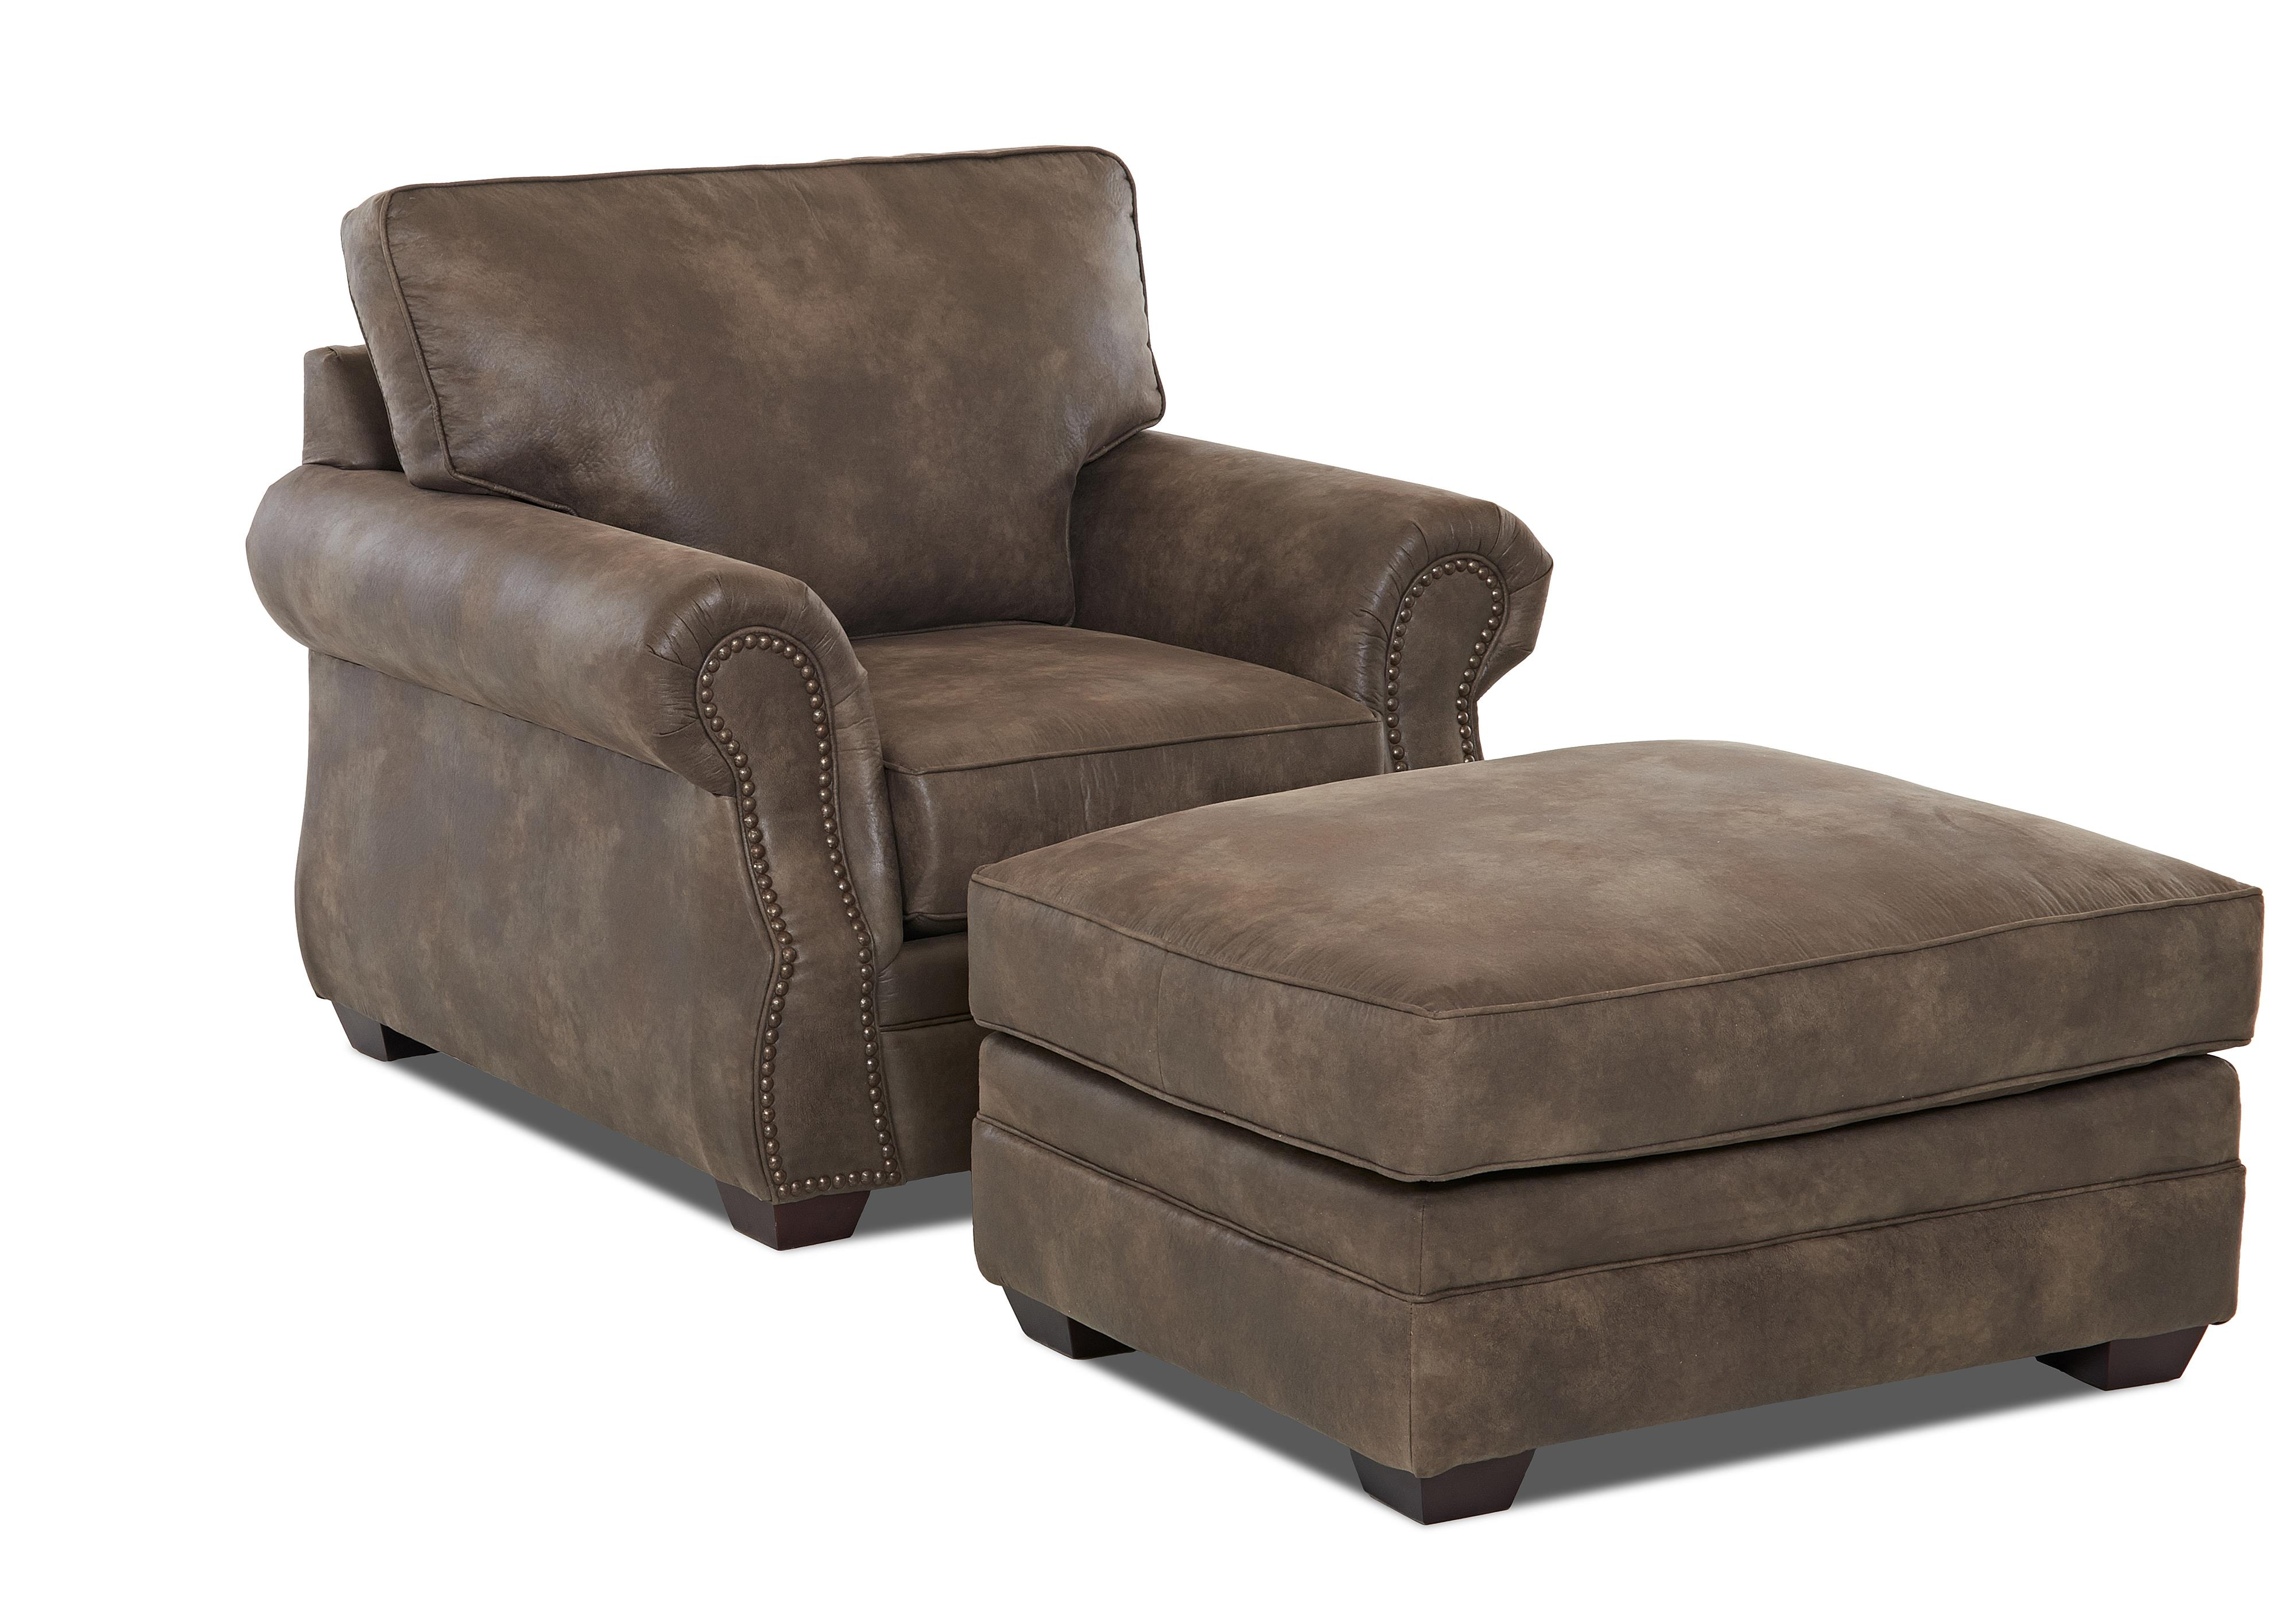 Klaussner Jasper Chair and Ottoman Set - Item Number: K12310 C+OTTO-PadreTaupe